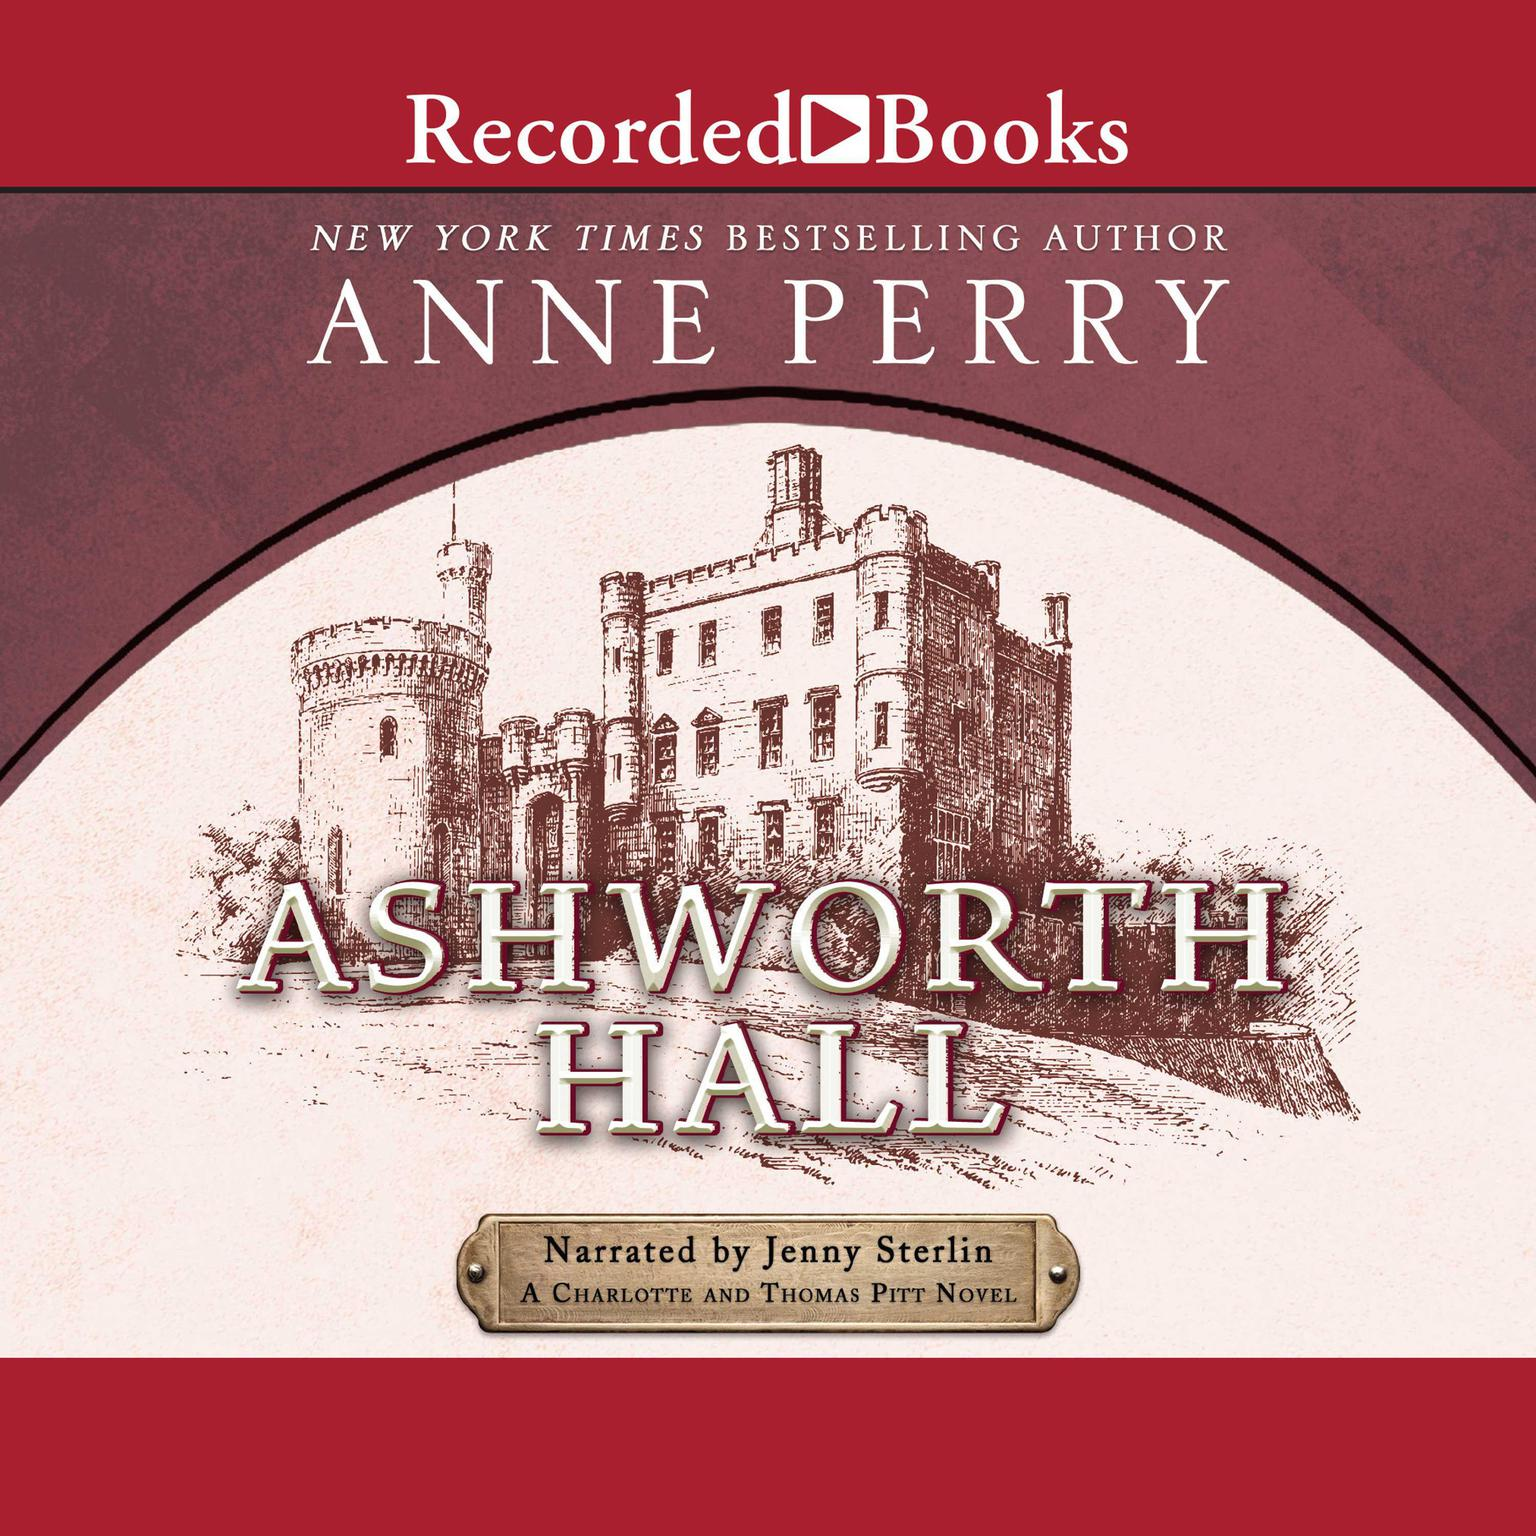 Ashworth Hall: A Charlotte and Thomas Pitt Novel  Audiobook, by Anne Perry